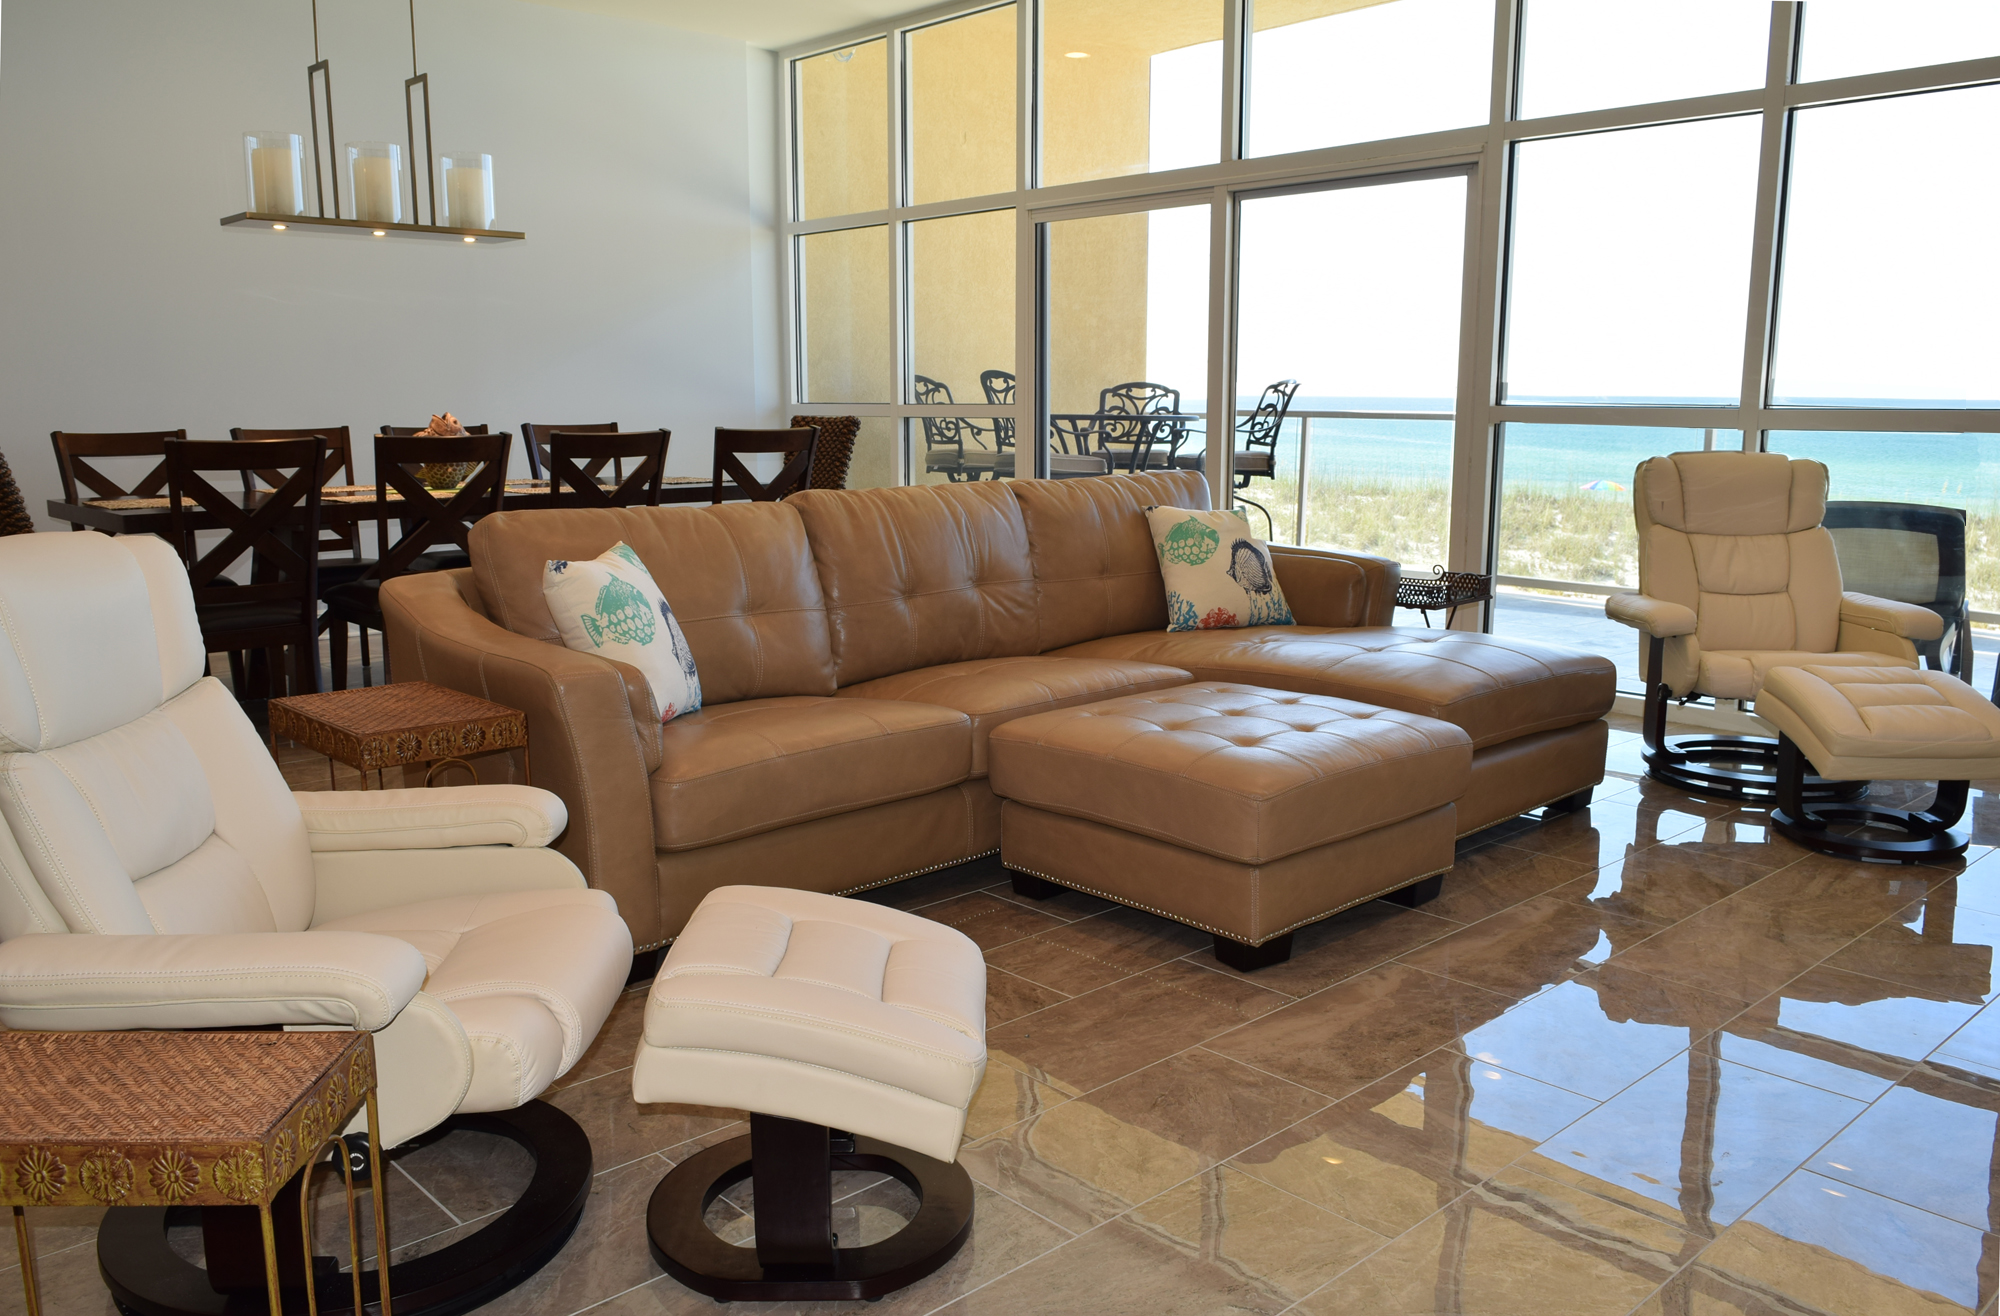 Regency Cabanas #B6 Condo rental in Regency Cabanas Pensacola Beach in Pensacola Beach Florida - #1